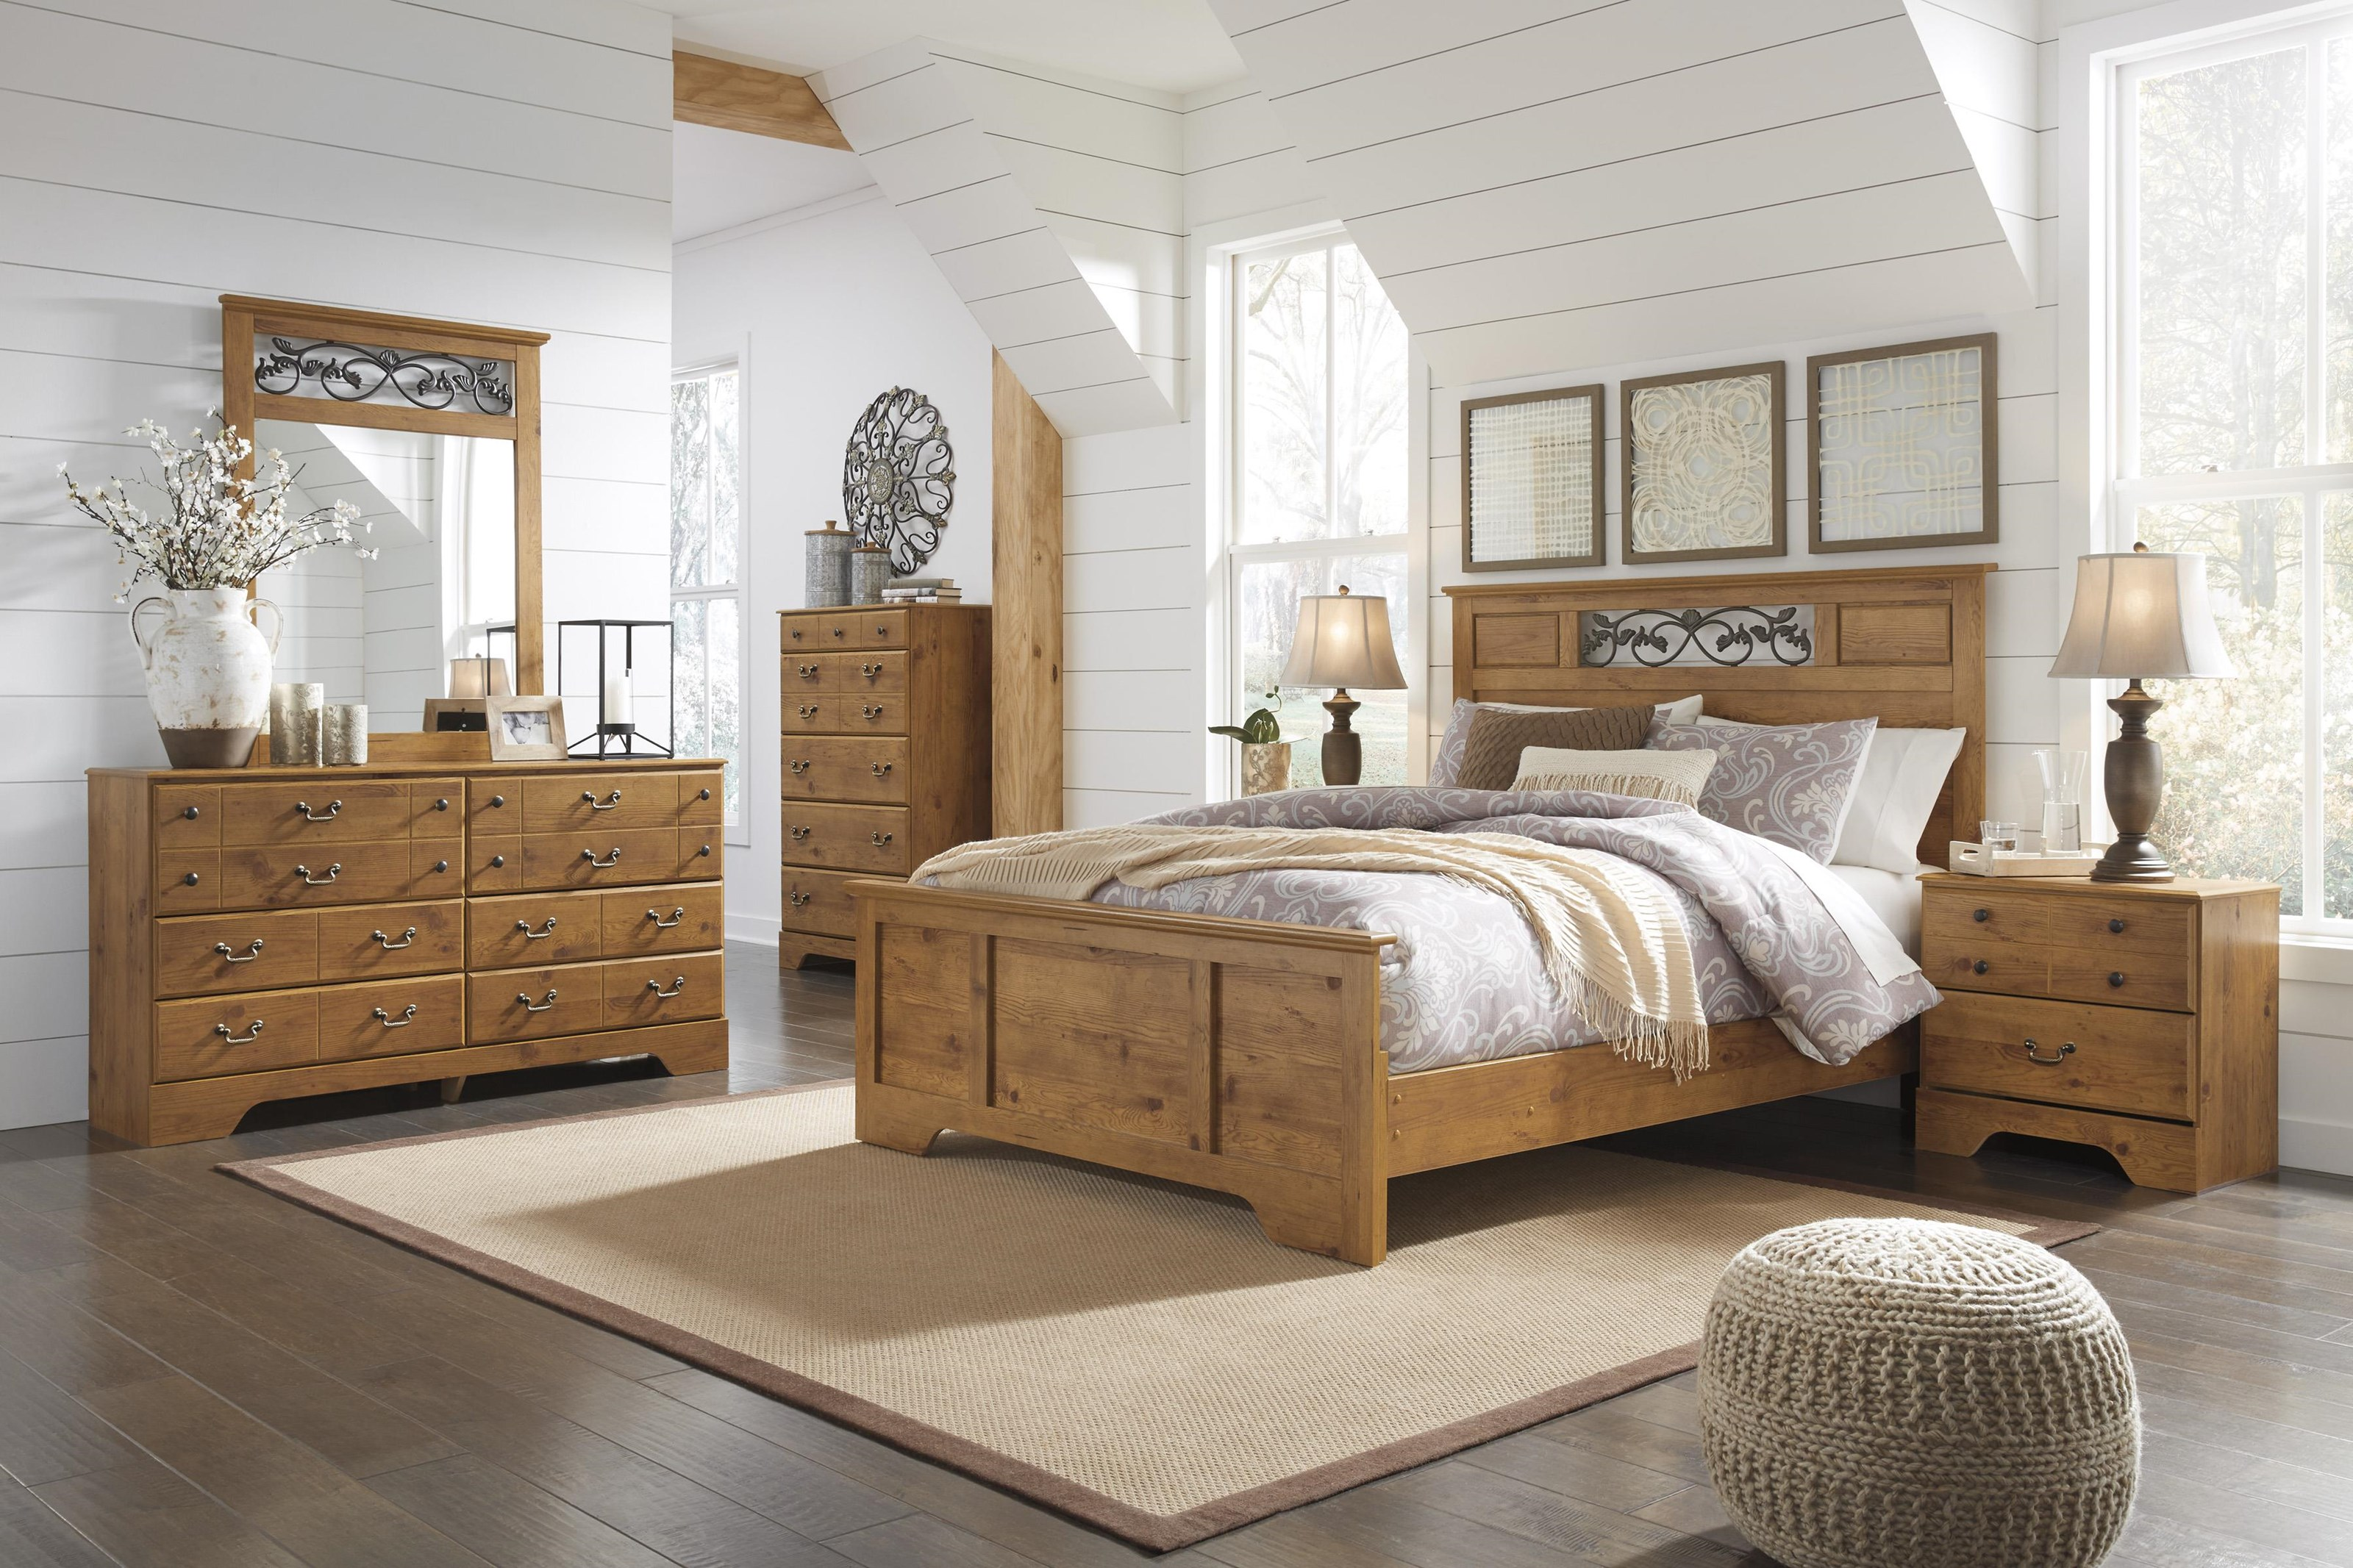 Bittersweet Queen bedroom group by Signature Design by Ashley at Value City Furniture